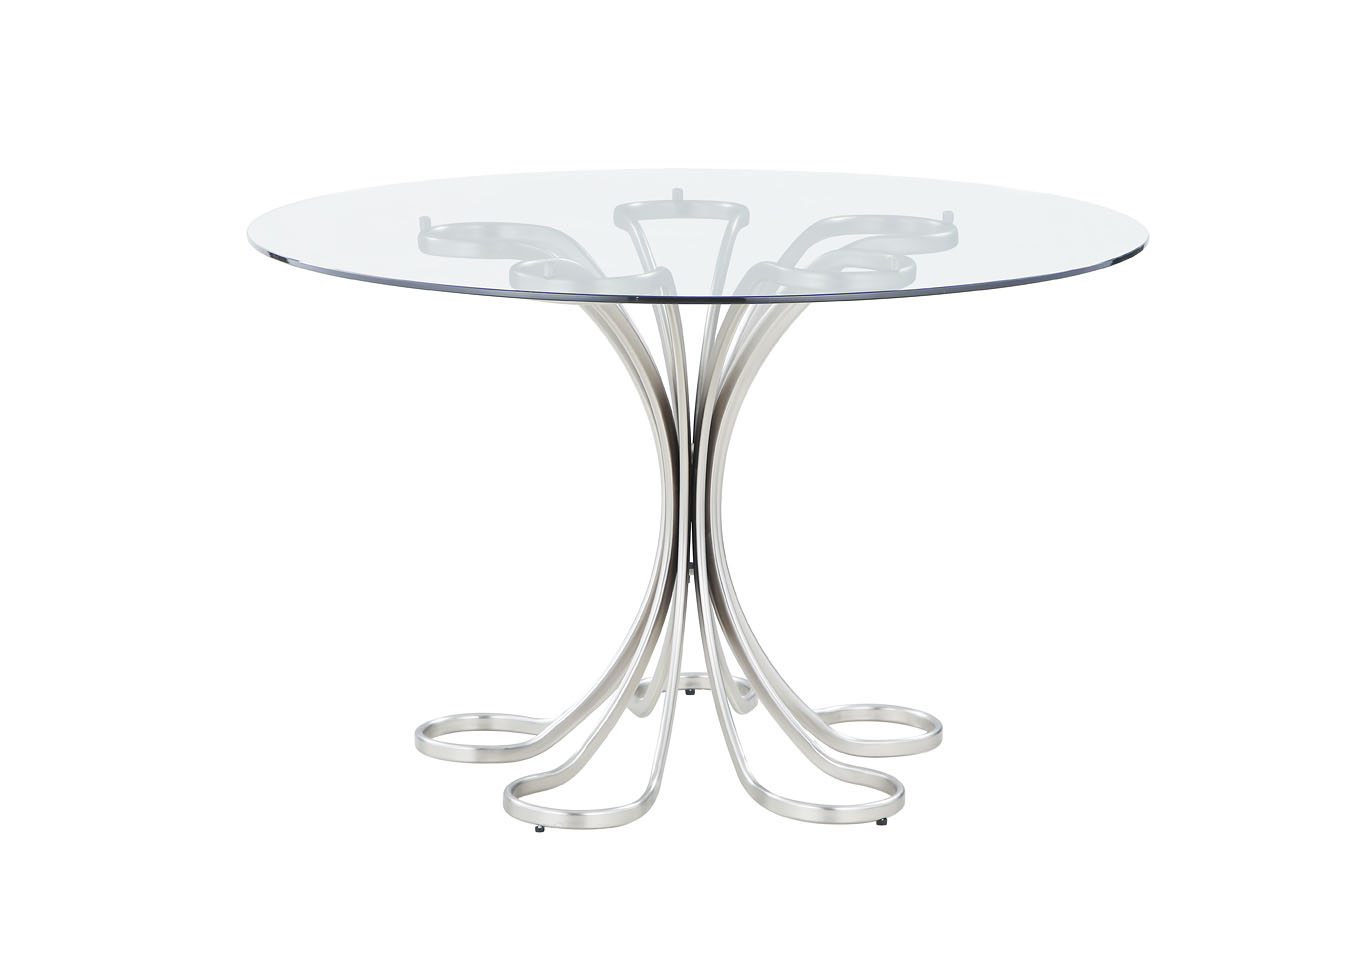 Desiree White Glass Dining Table,Chintaly Imports